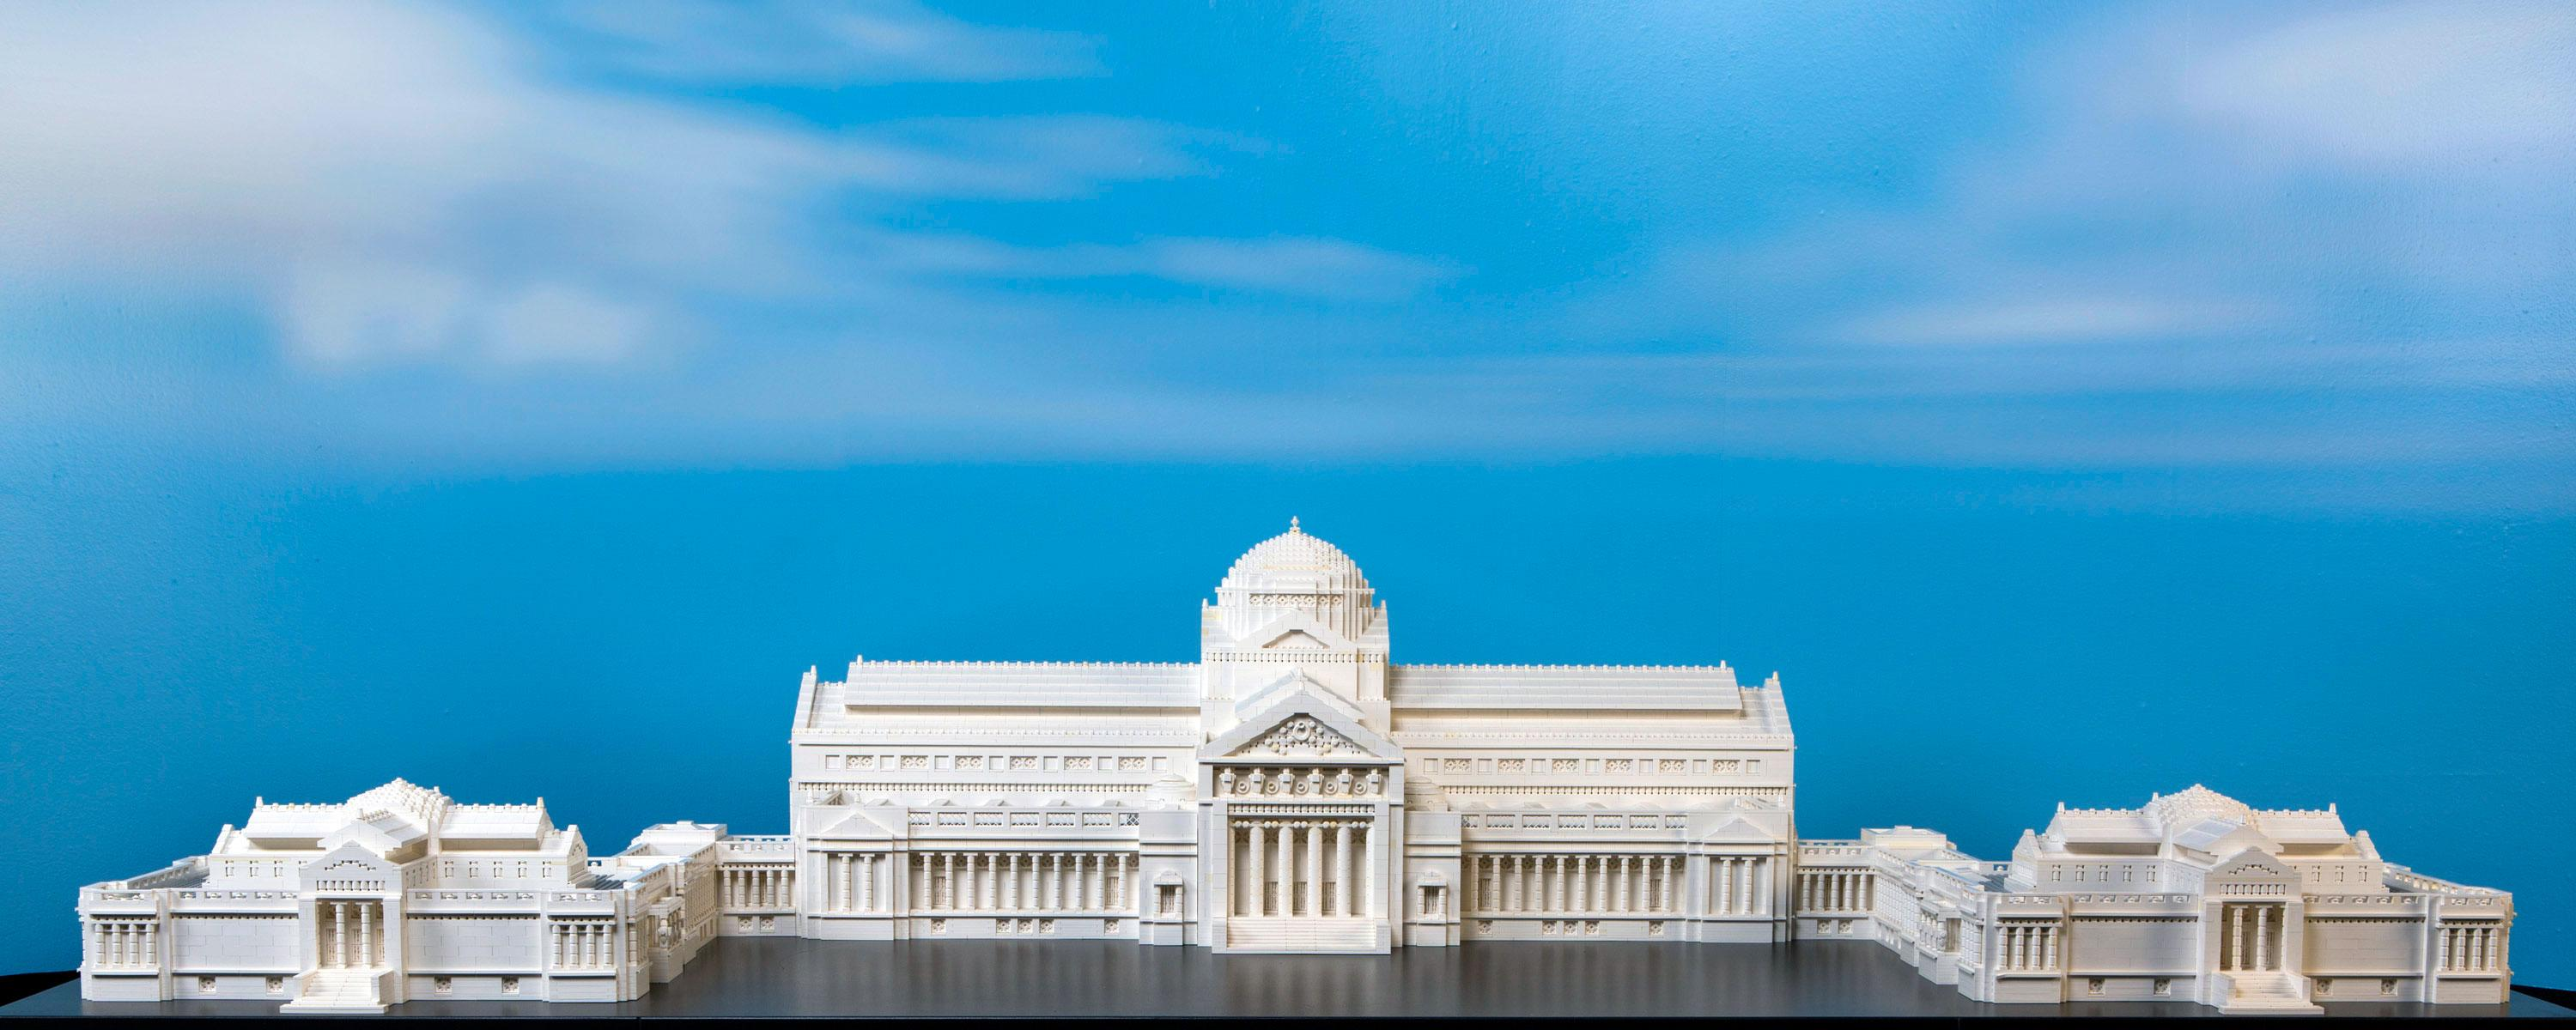 Adam Reed Tucker built a Lego model of the Museum of Science and Industry as its original building: the Palace of Fine Arts. (J.B. Spector / Museum of Science and Industry)